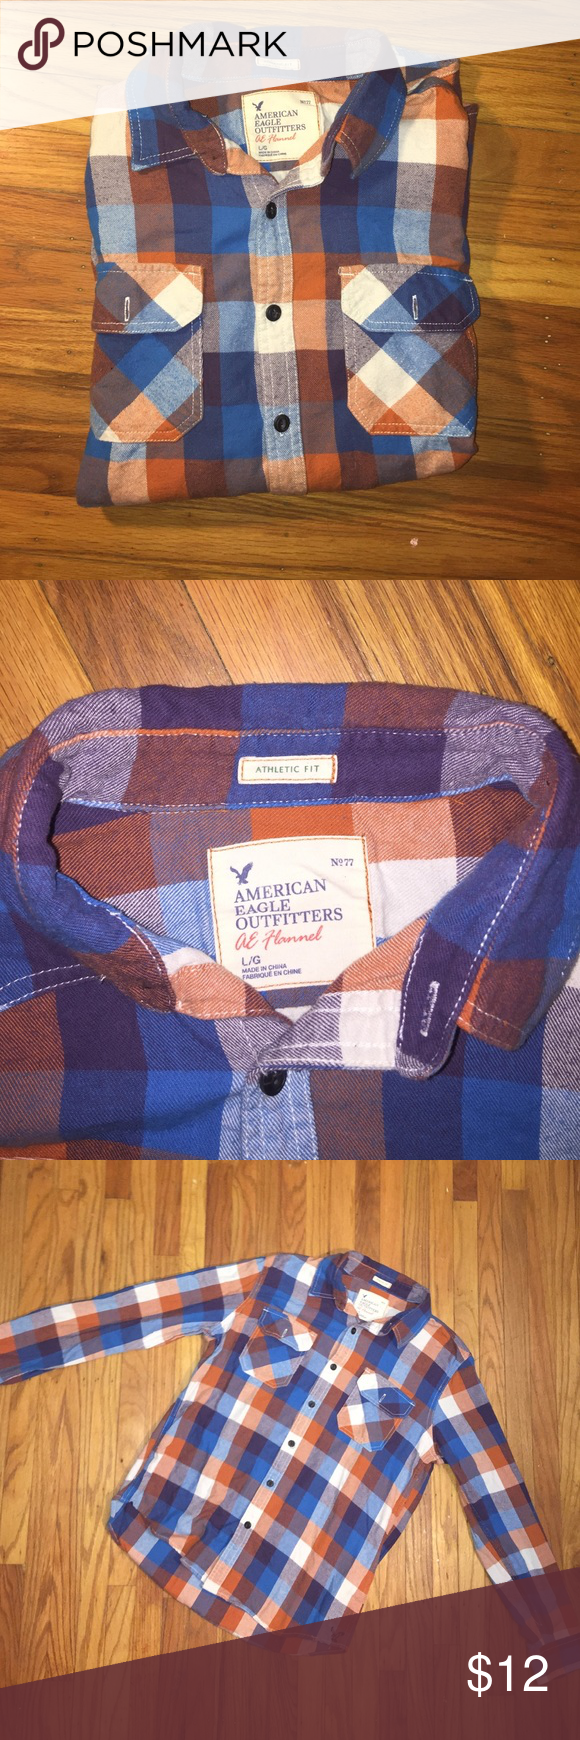 American Eagle Flannel lightly worn athletic fit flannel Shirts